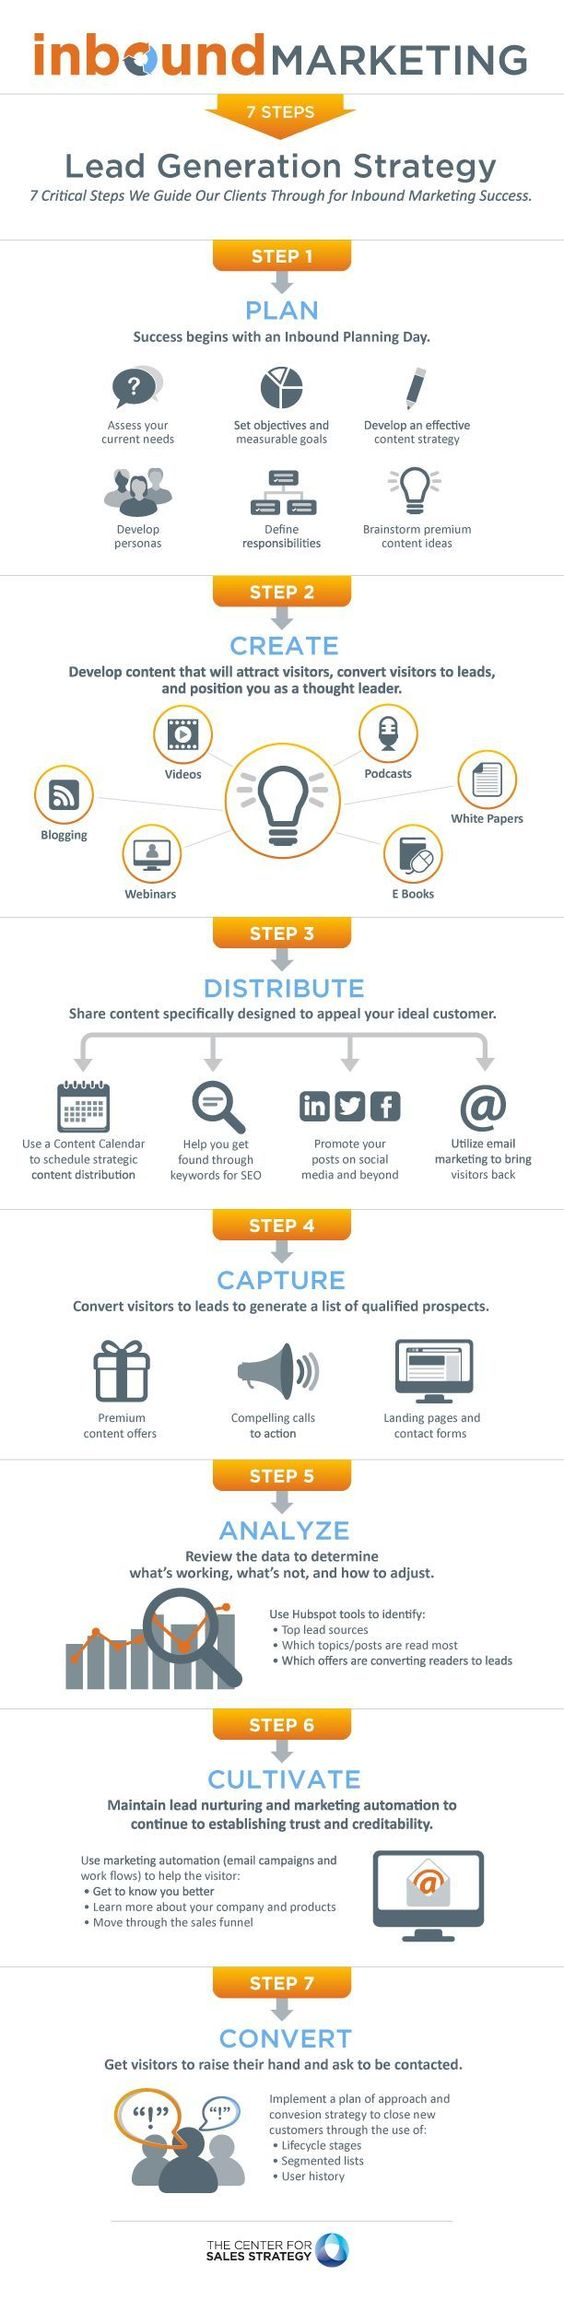 This is how casual blog visitors become leads, and the more options you provide for a visitor to become a lead  keeping in mind that every person is at a different position in the marketing funnel   the more opportunities you have to convert.